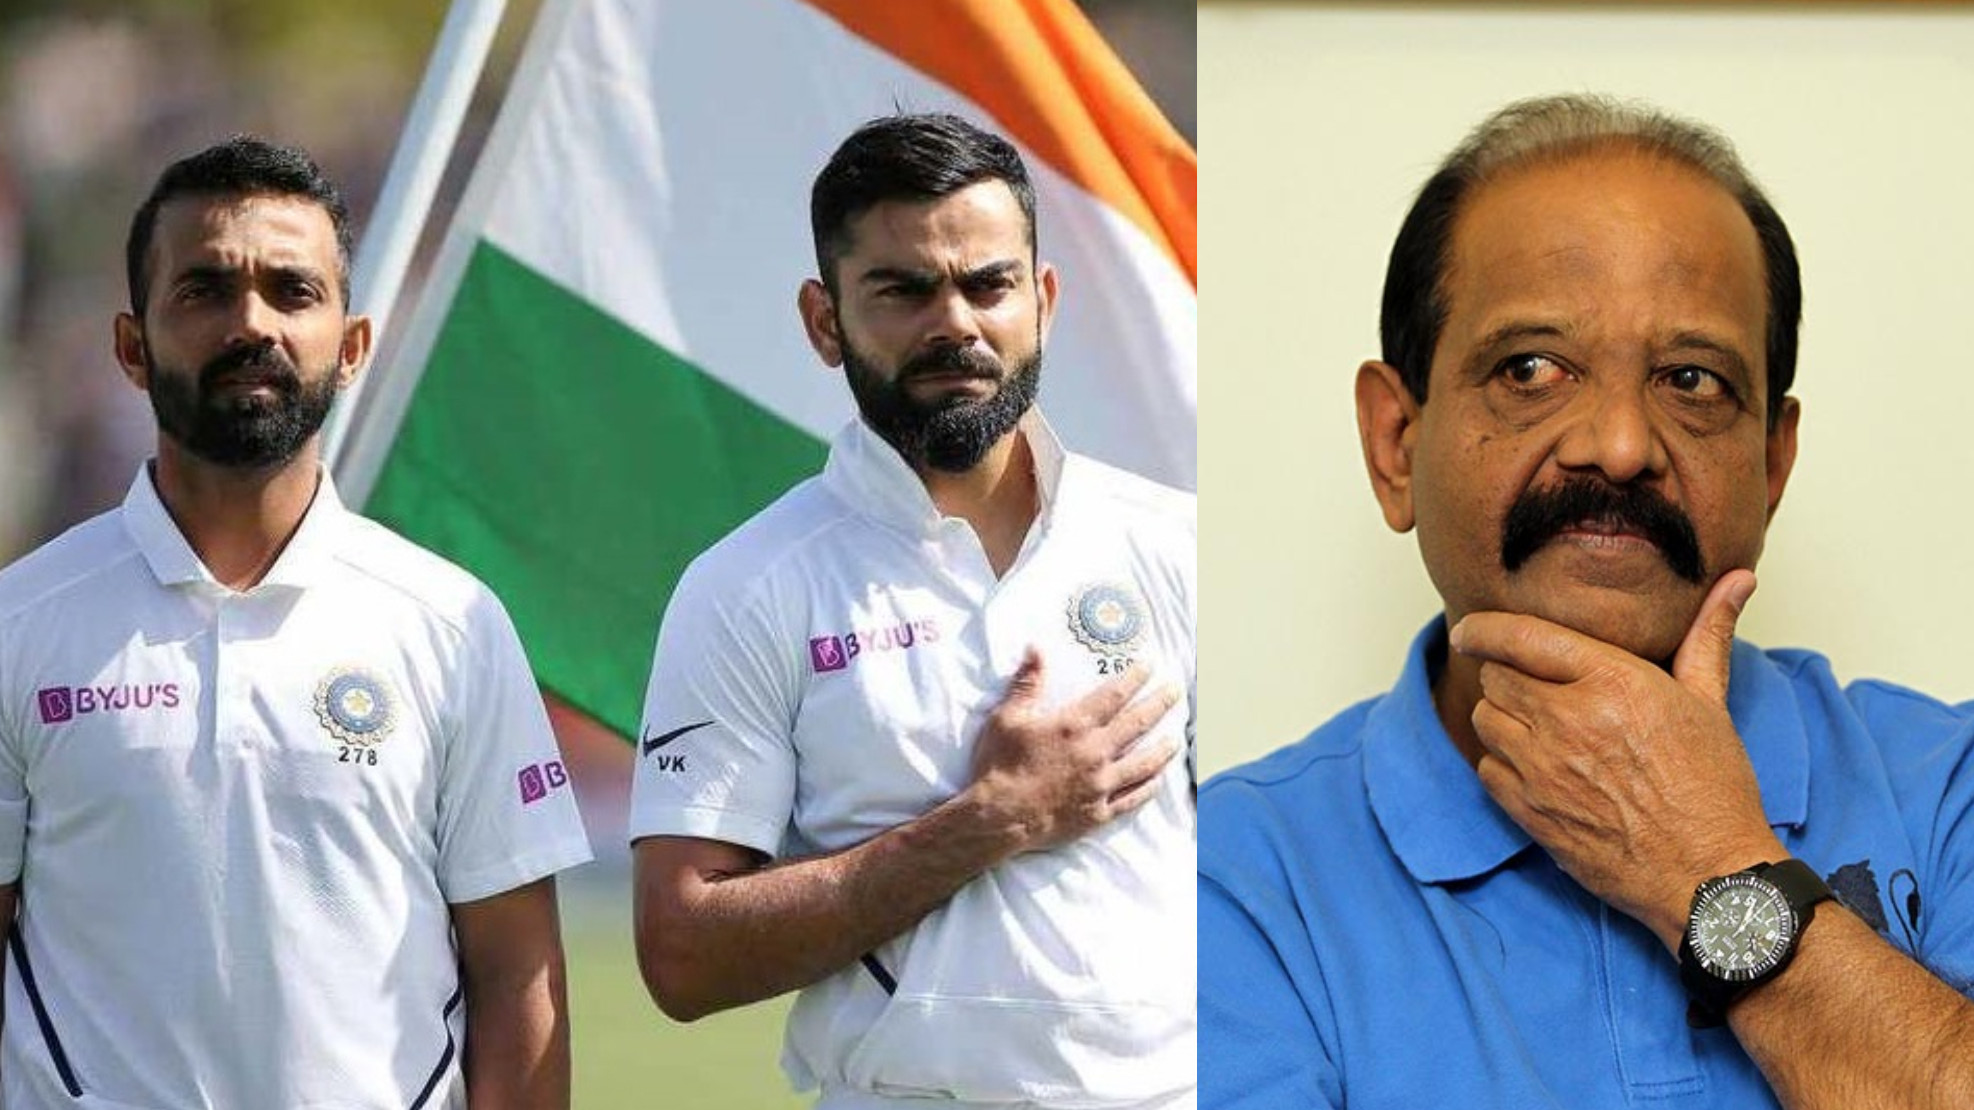 Both Kohli and Rahane have different captaincy styles; but are hungry for wins, says GR Viswanath